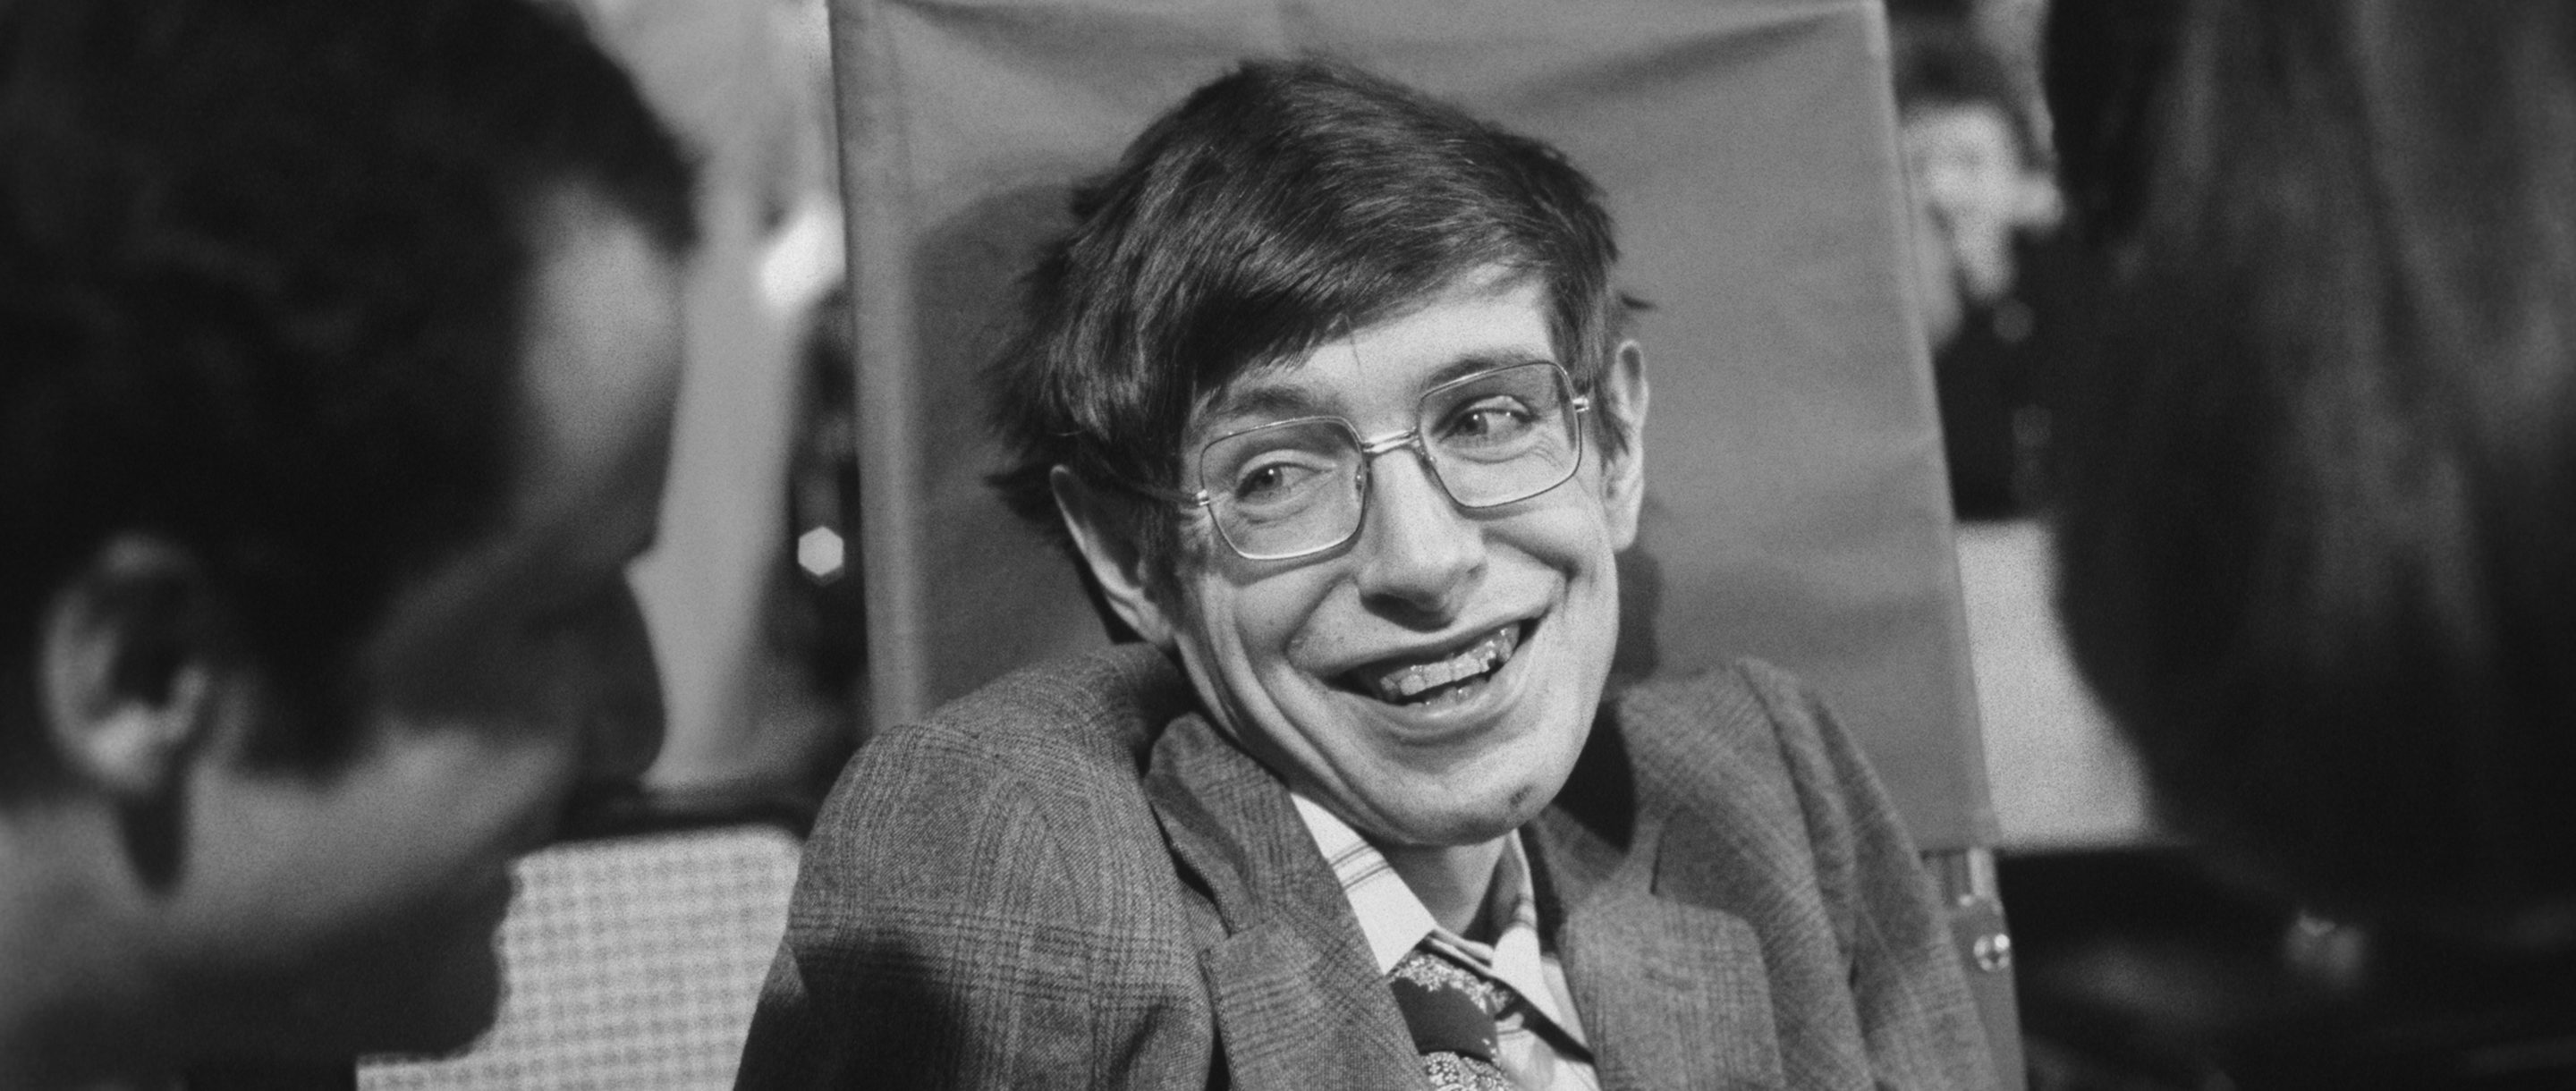 Photo of Stephen Hawking in 1979 in Princeton, New Jersey.